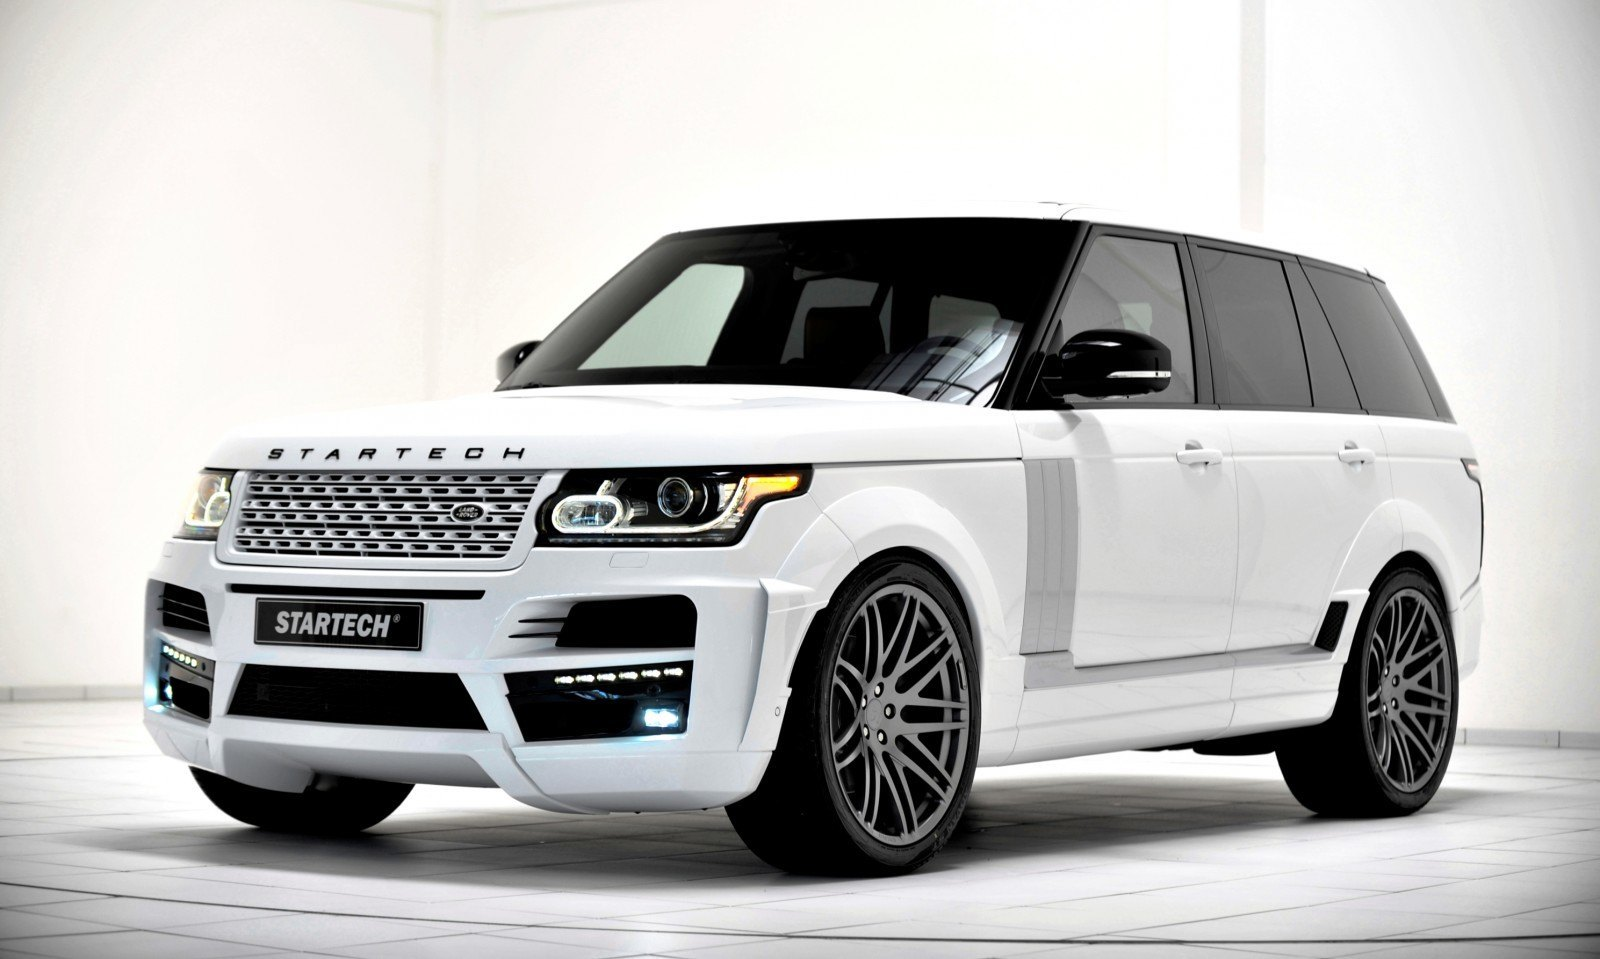 2013-2015 Range Rover By StarTech Brings Best of BRABUS Tech to Lux SUV King 22